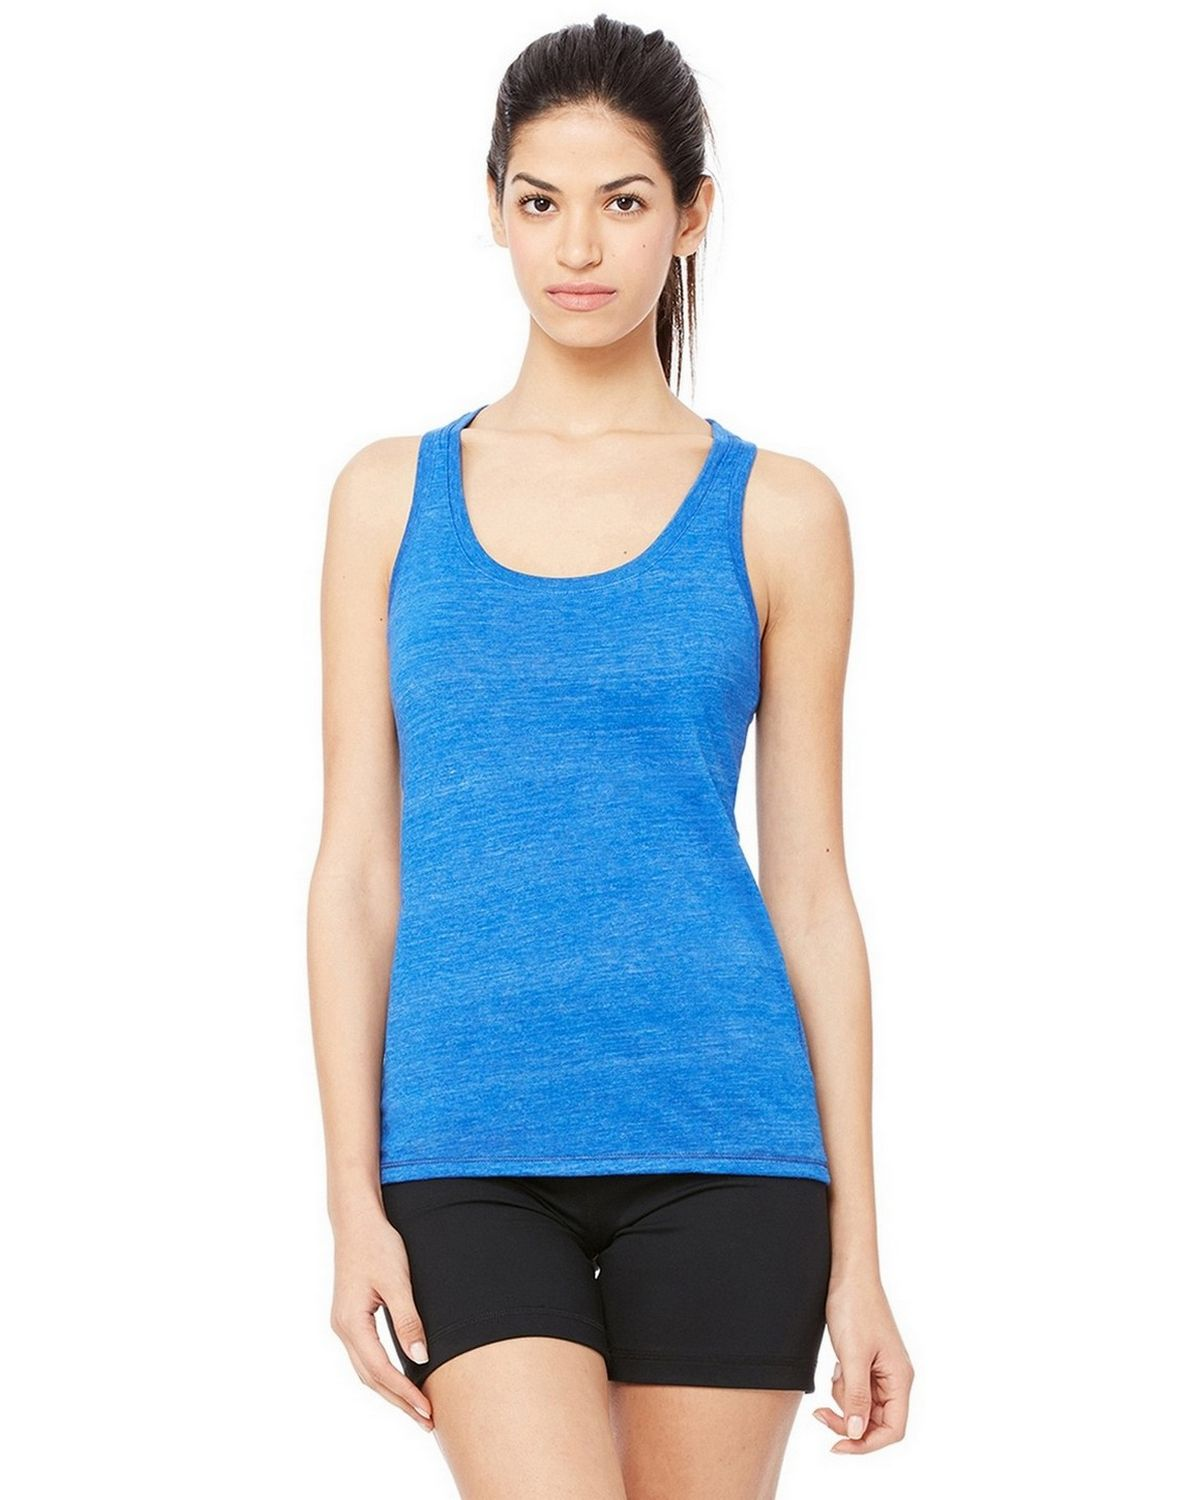 All Sport W2170 Women's Performance Triblend Racerback Tank